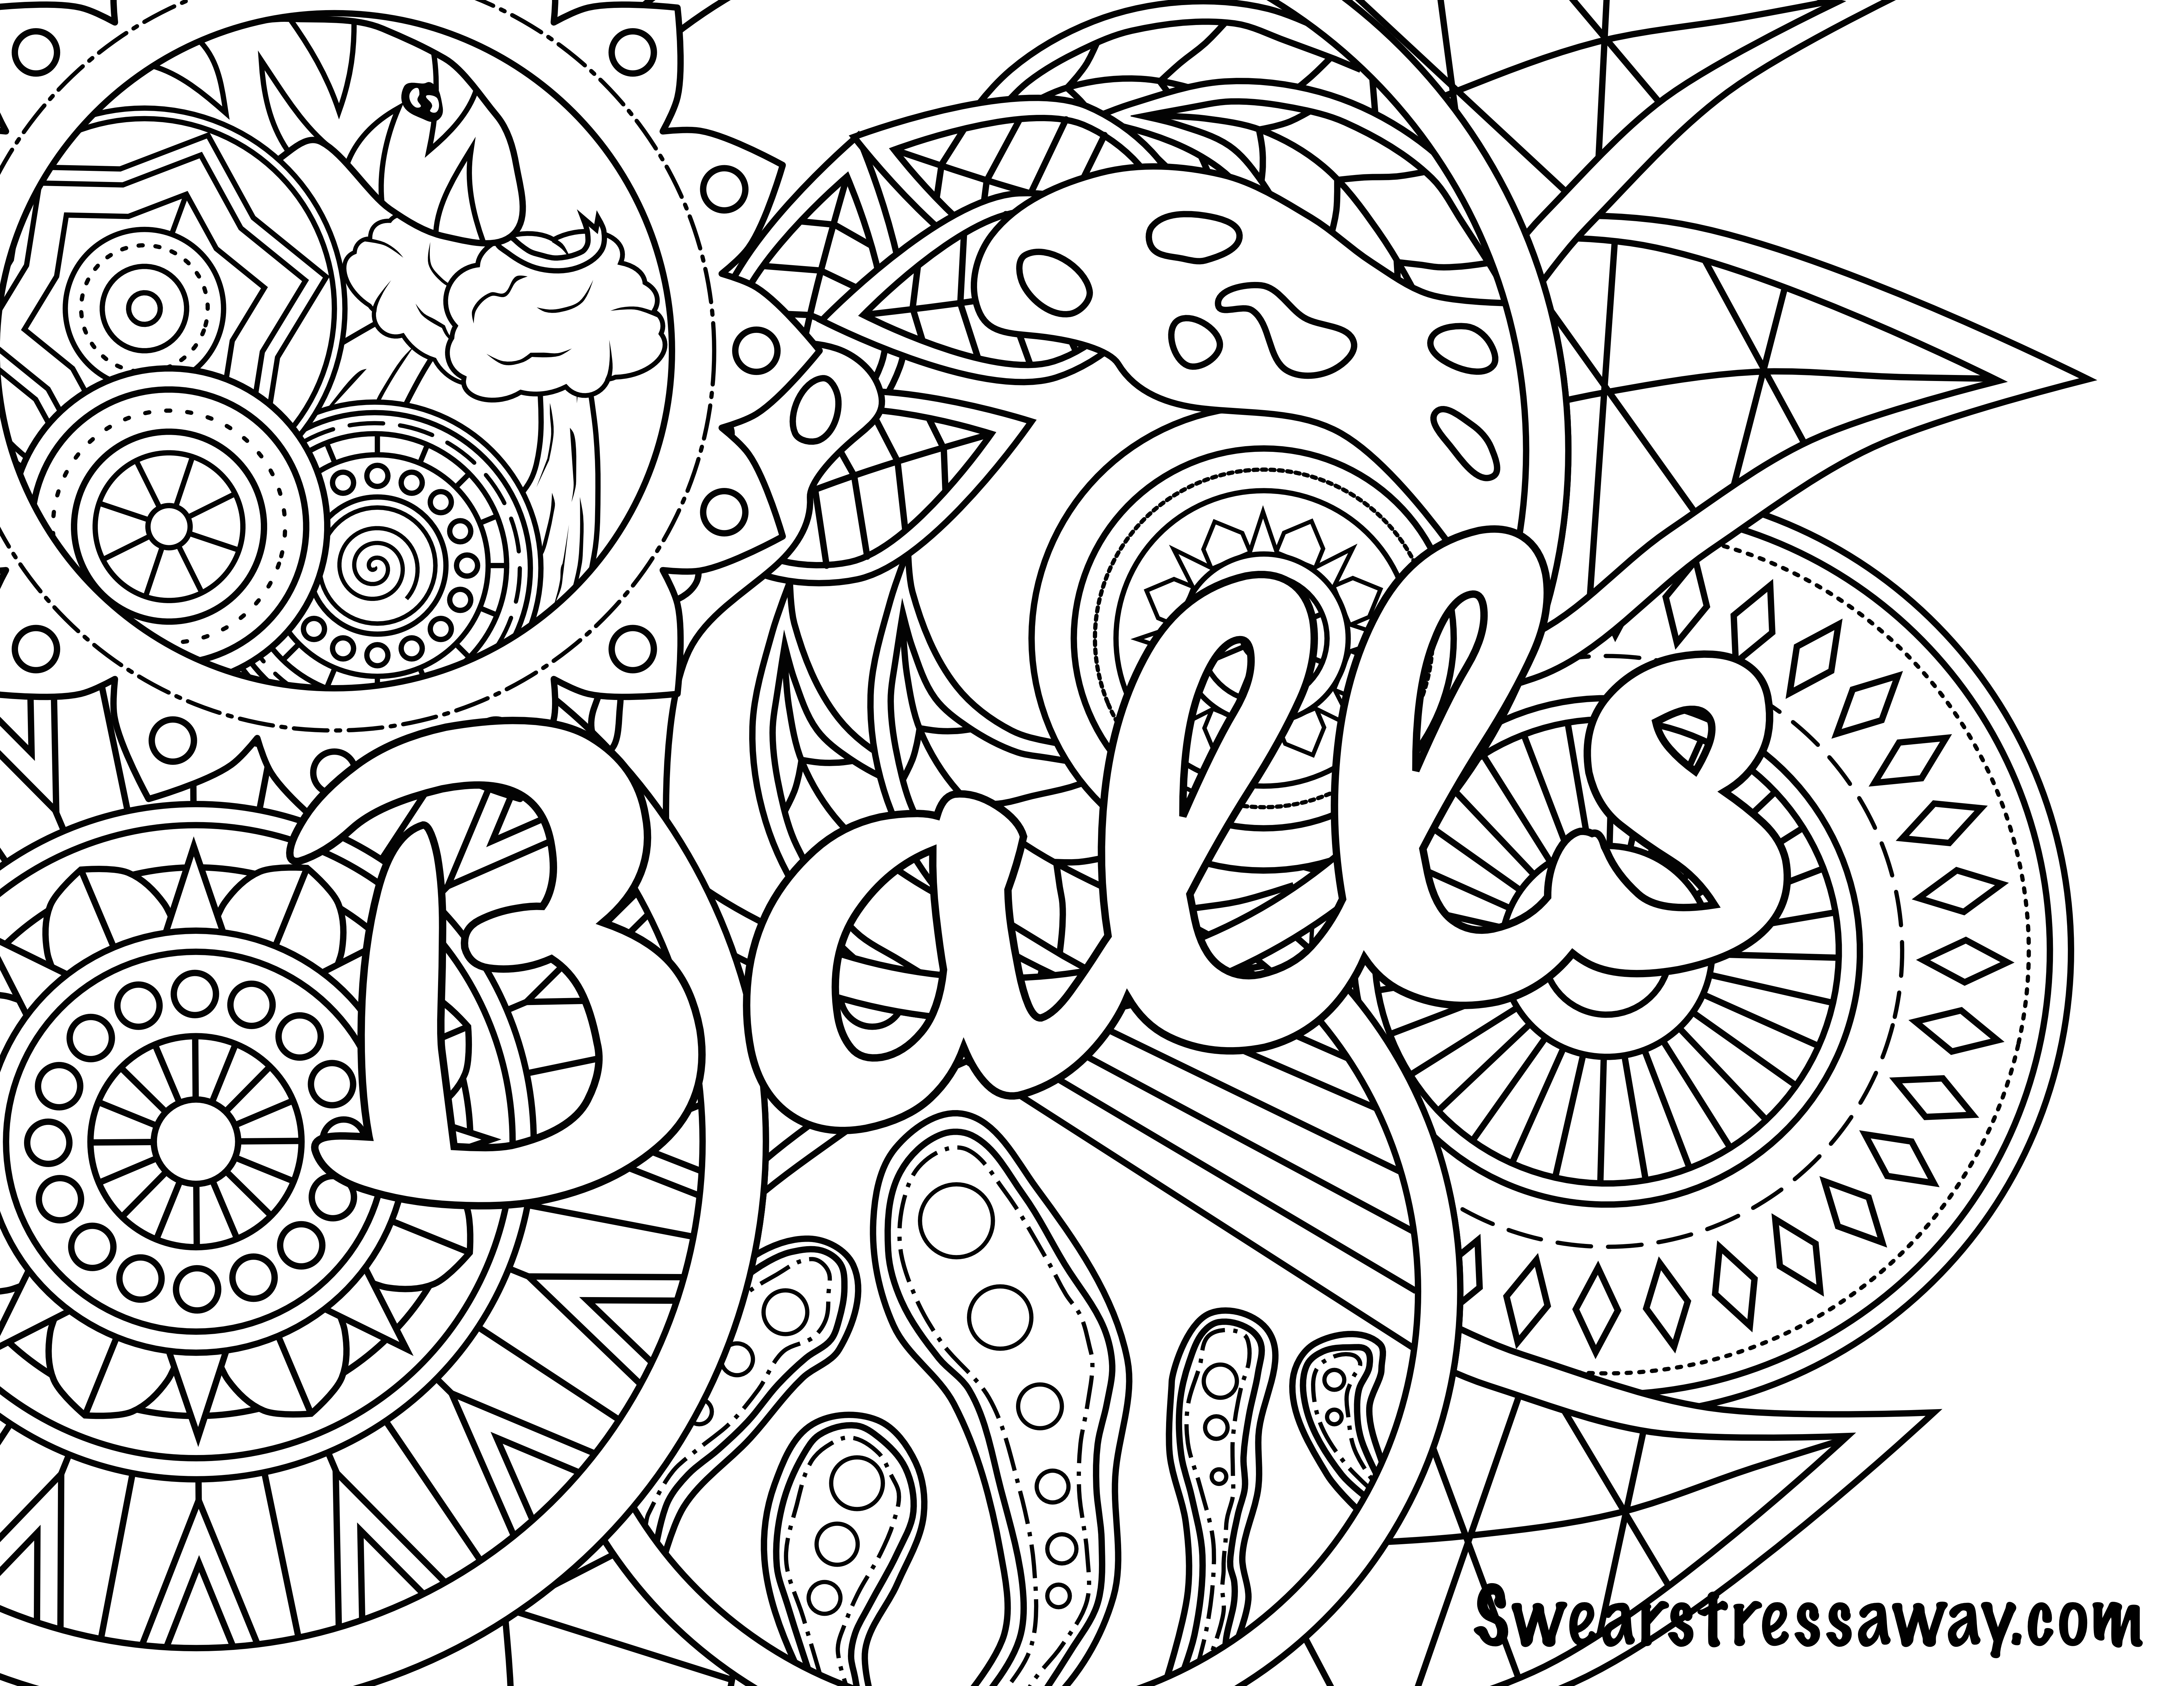 Bad word coloring pages - Balls Swear Word Coloring Page Adult Coloring Page Swearstressaway Com Comes From